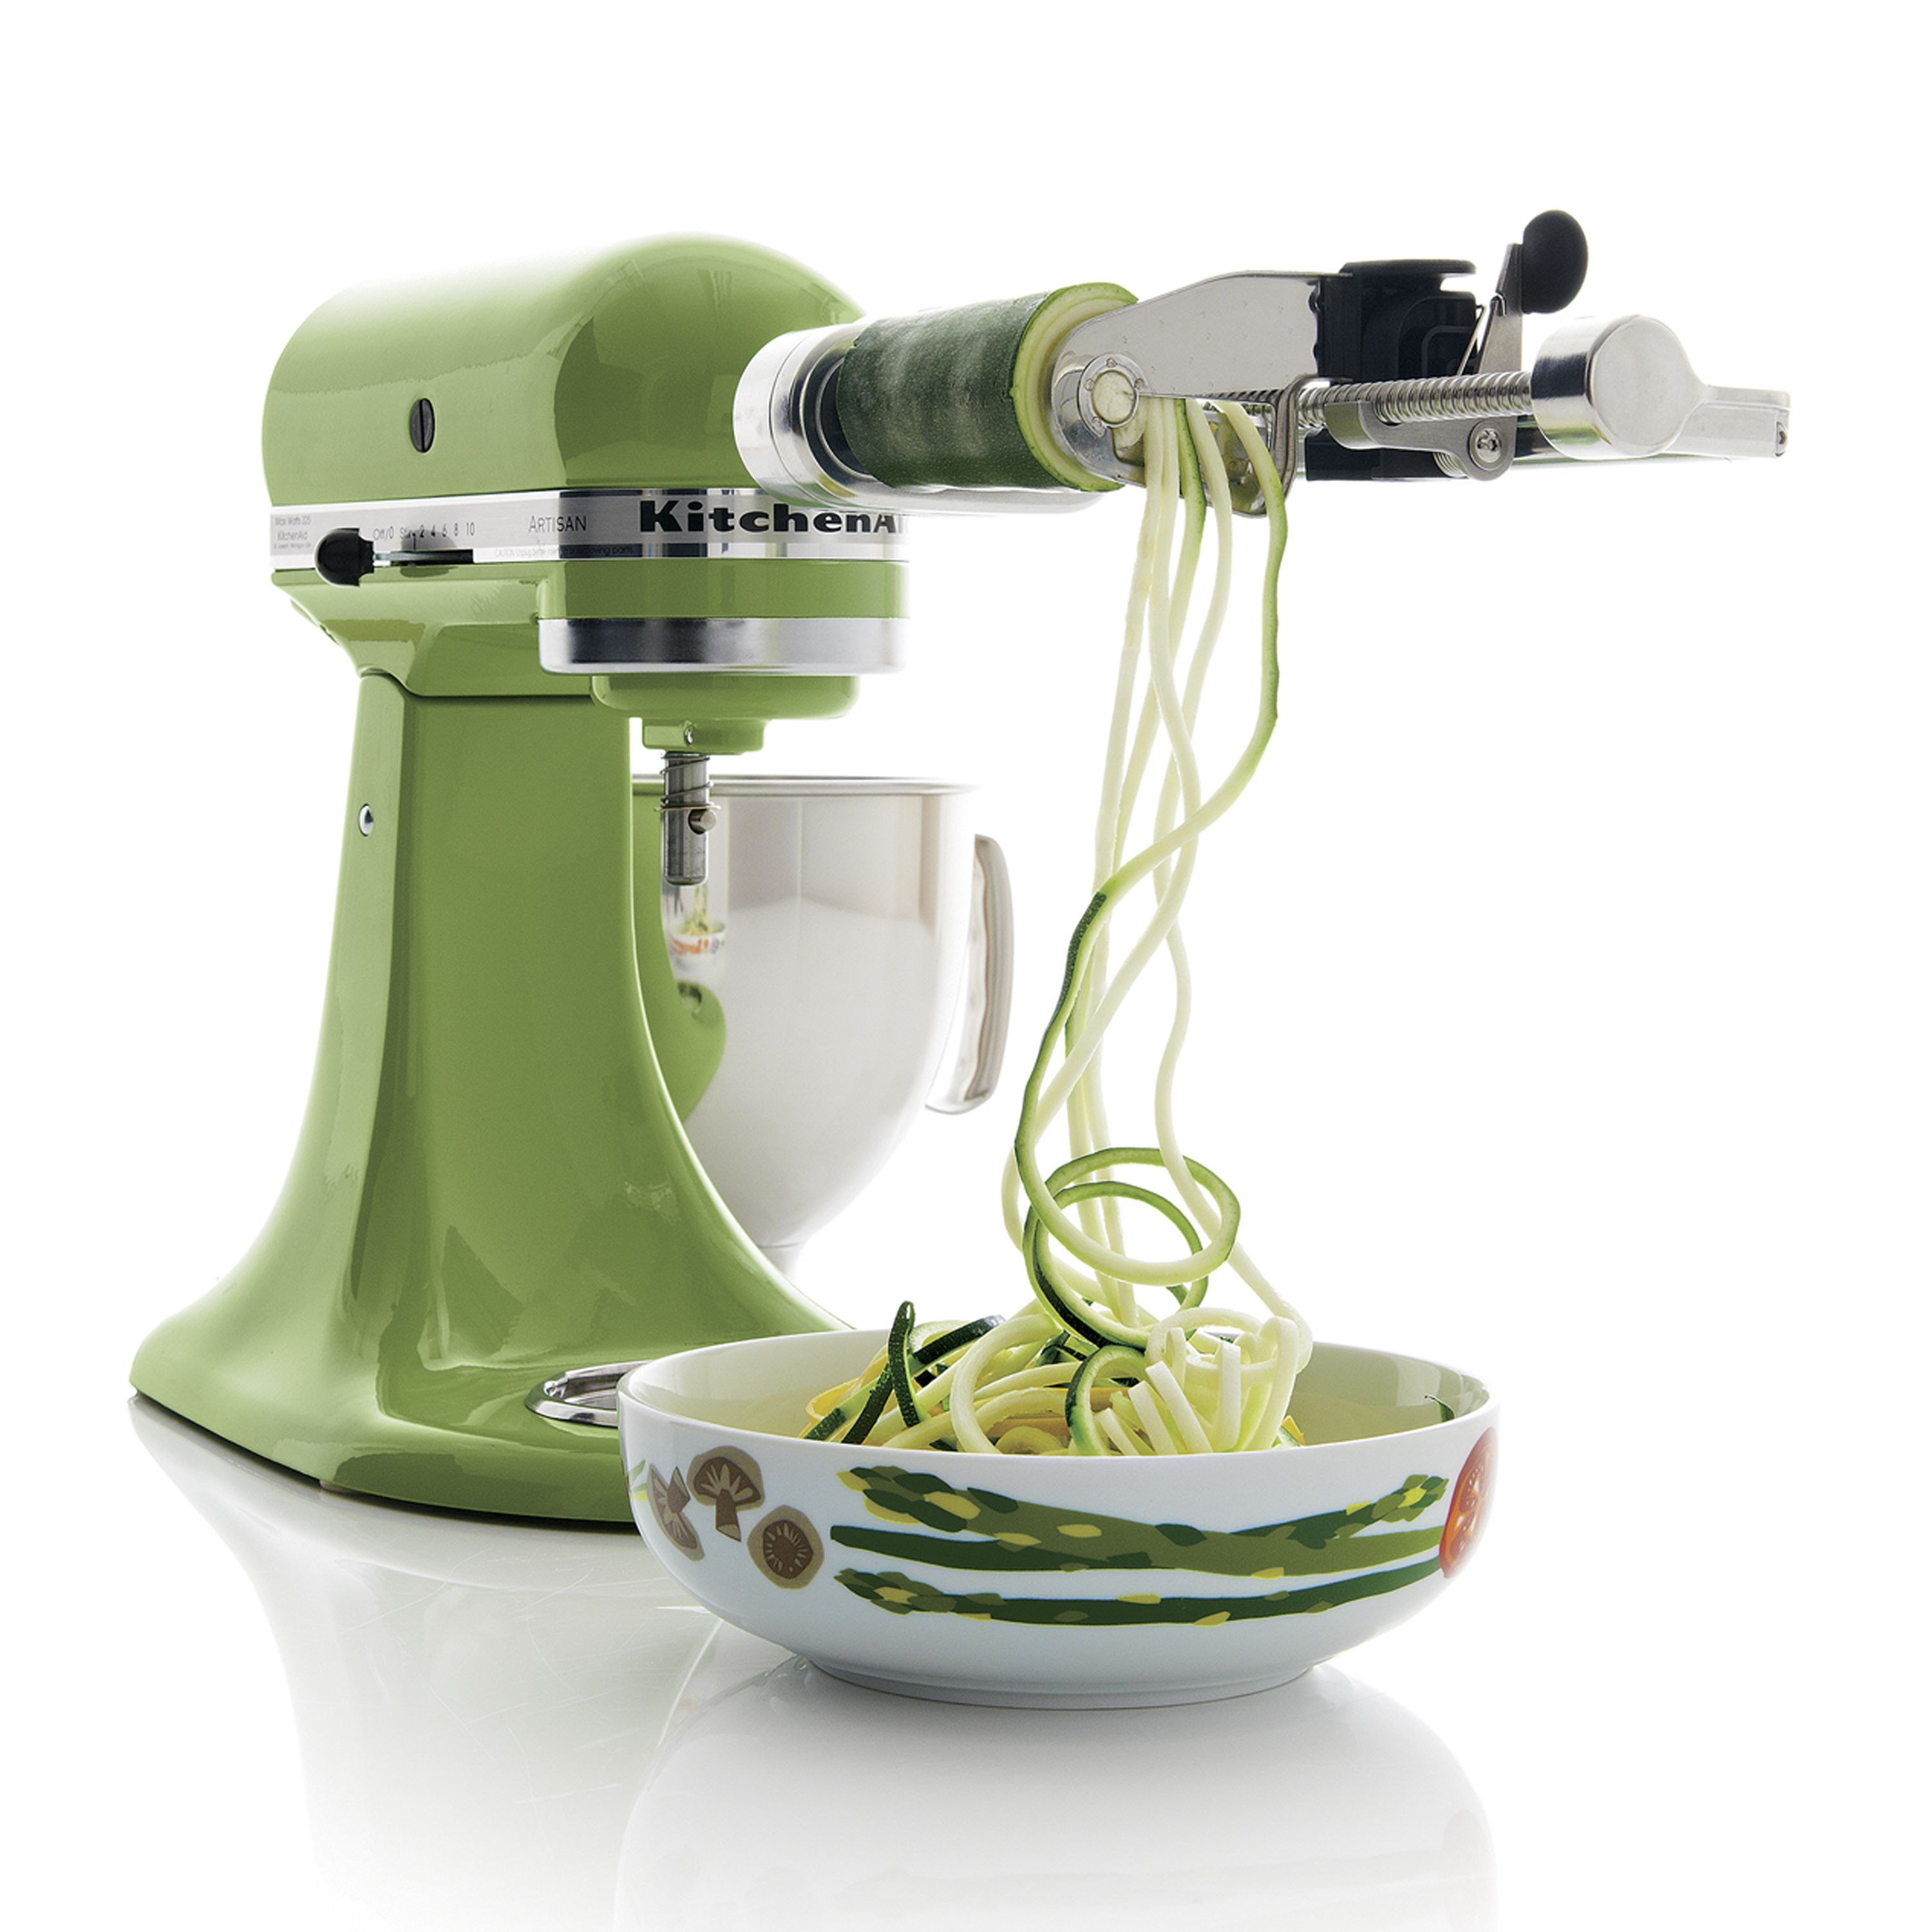 Outfit Your Kitchenaid Mixer With A Spiral Cutter